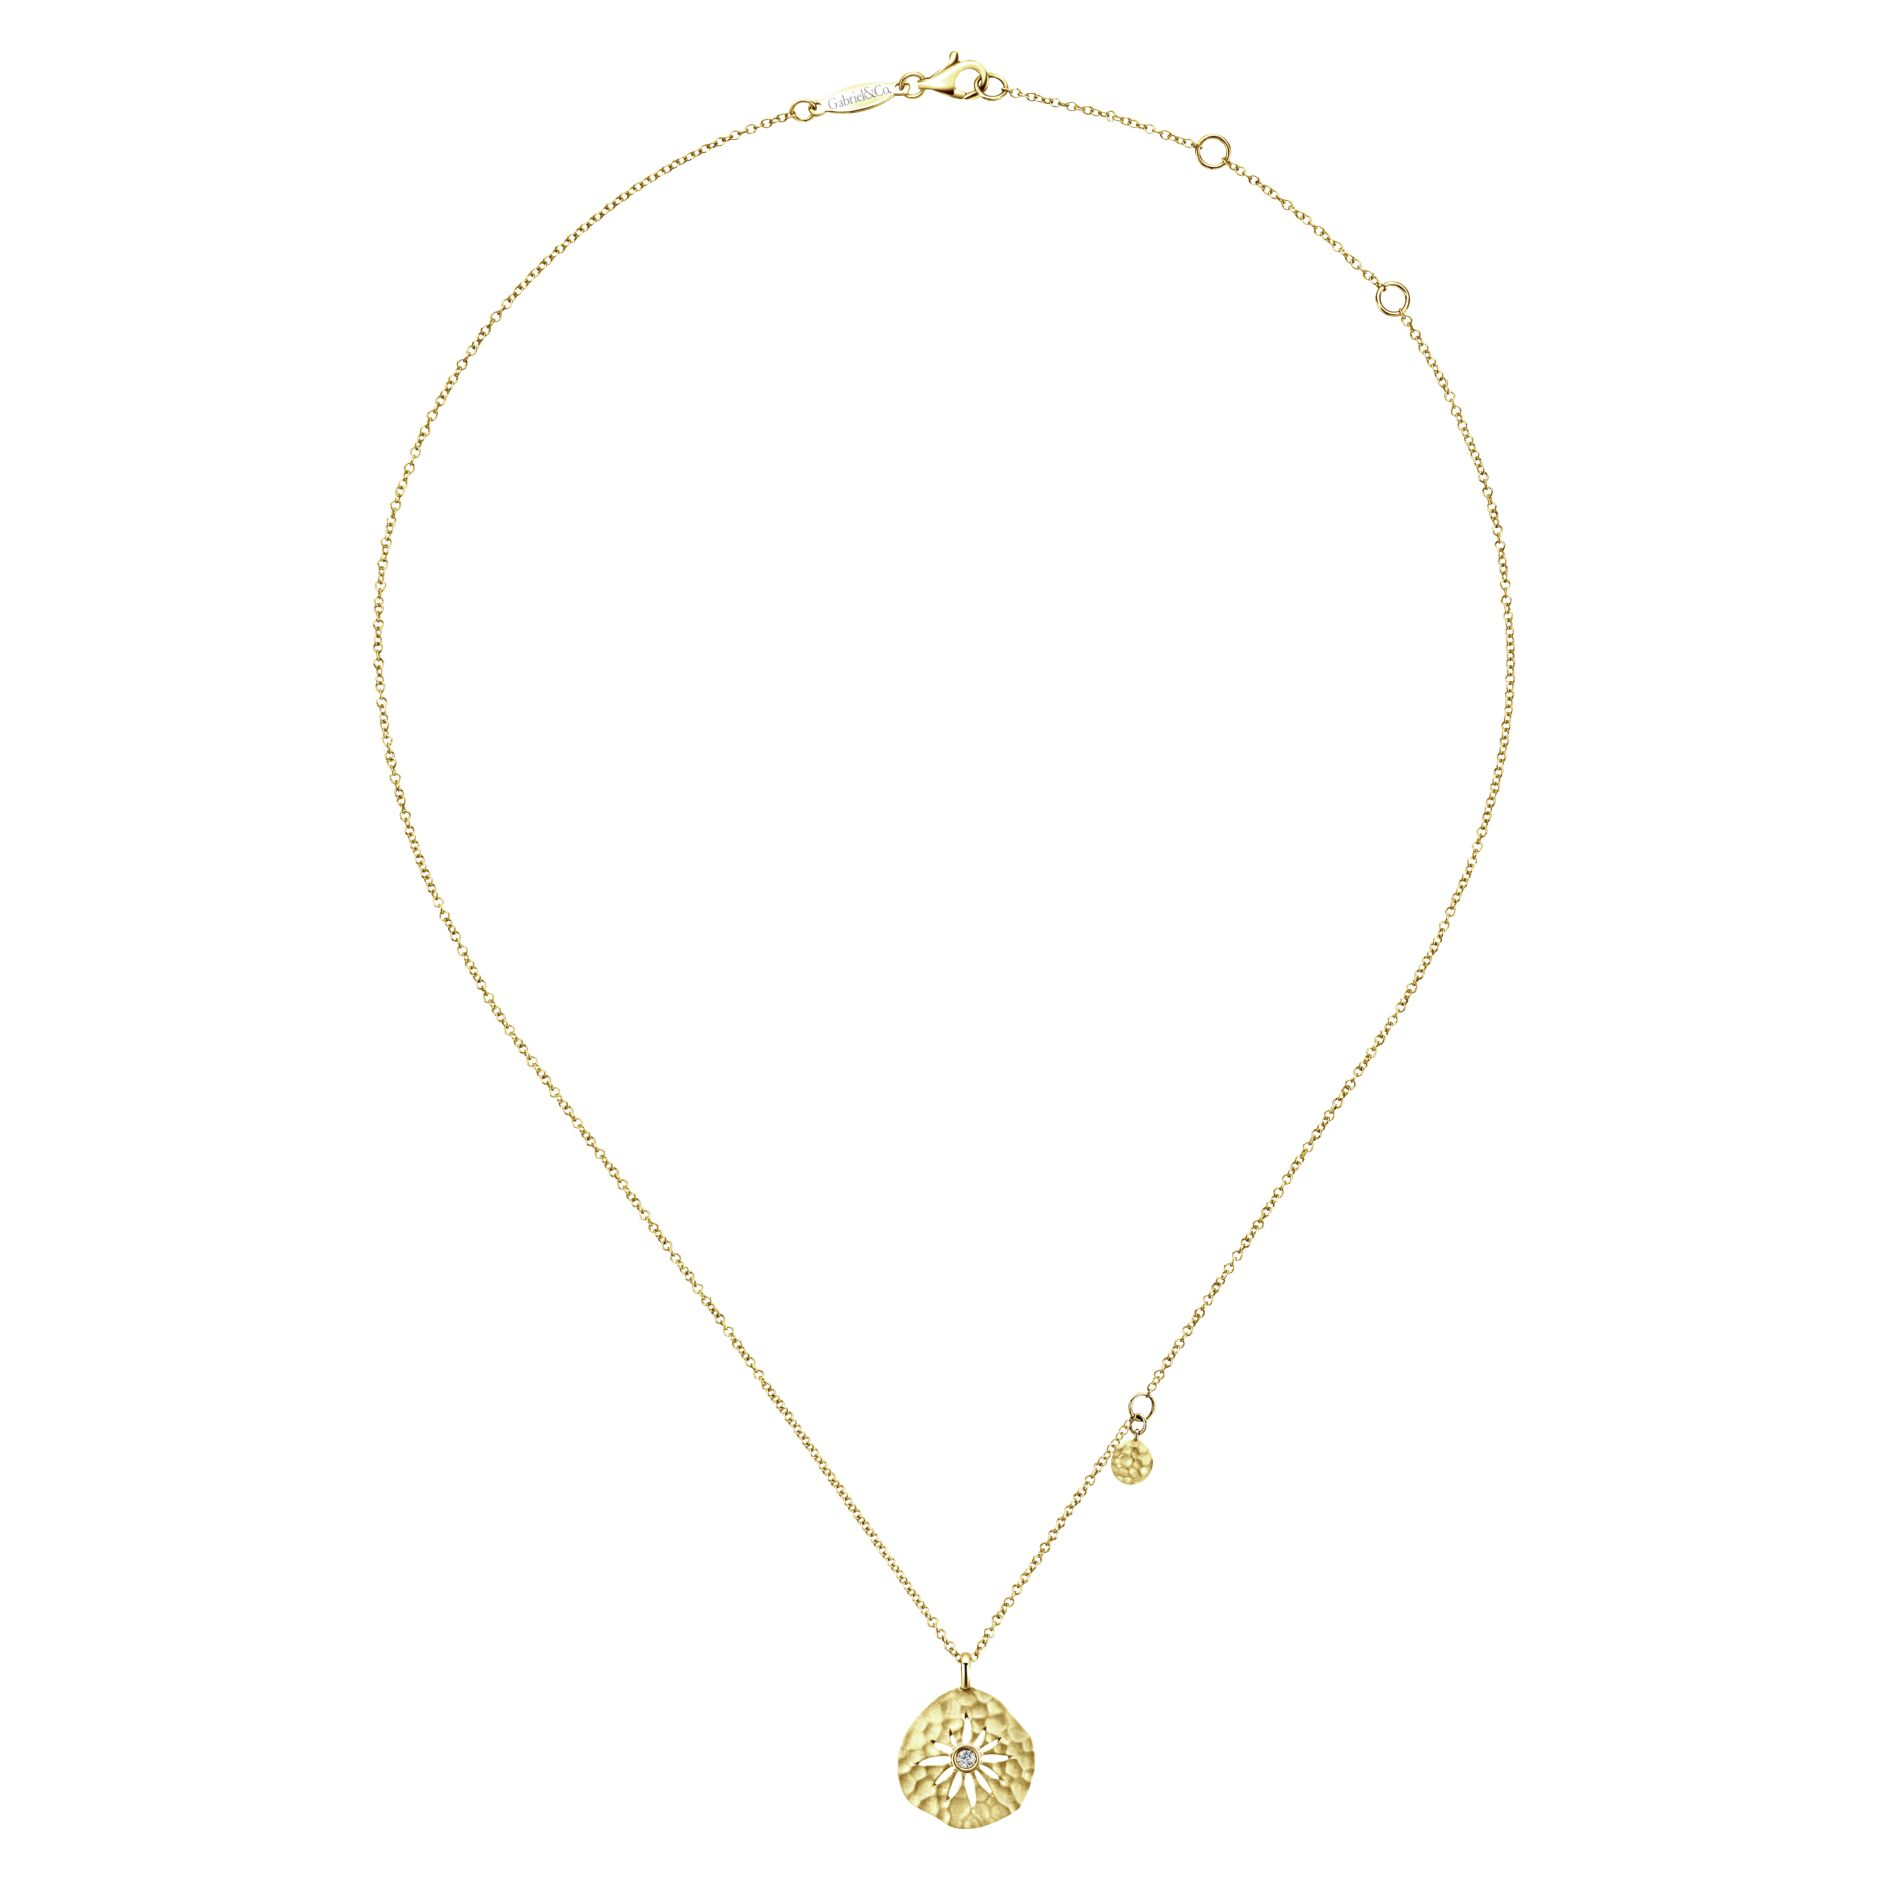 Necklaces - YELLOW GOLD FASHION DIAMOND NECKLACE - image #2